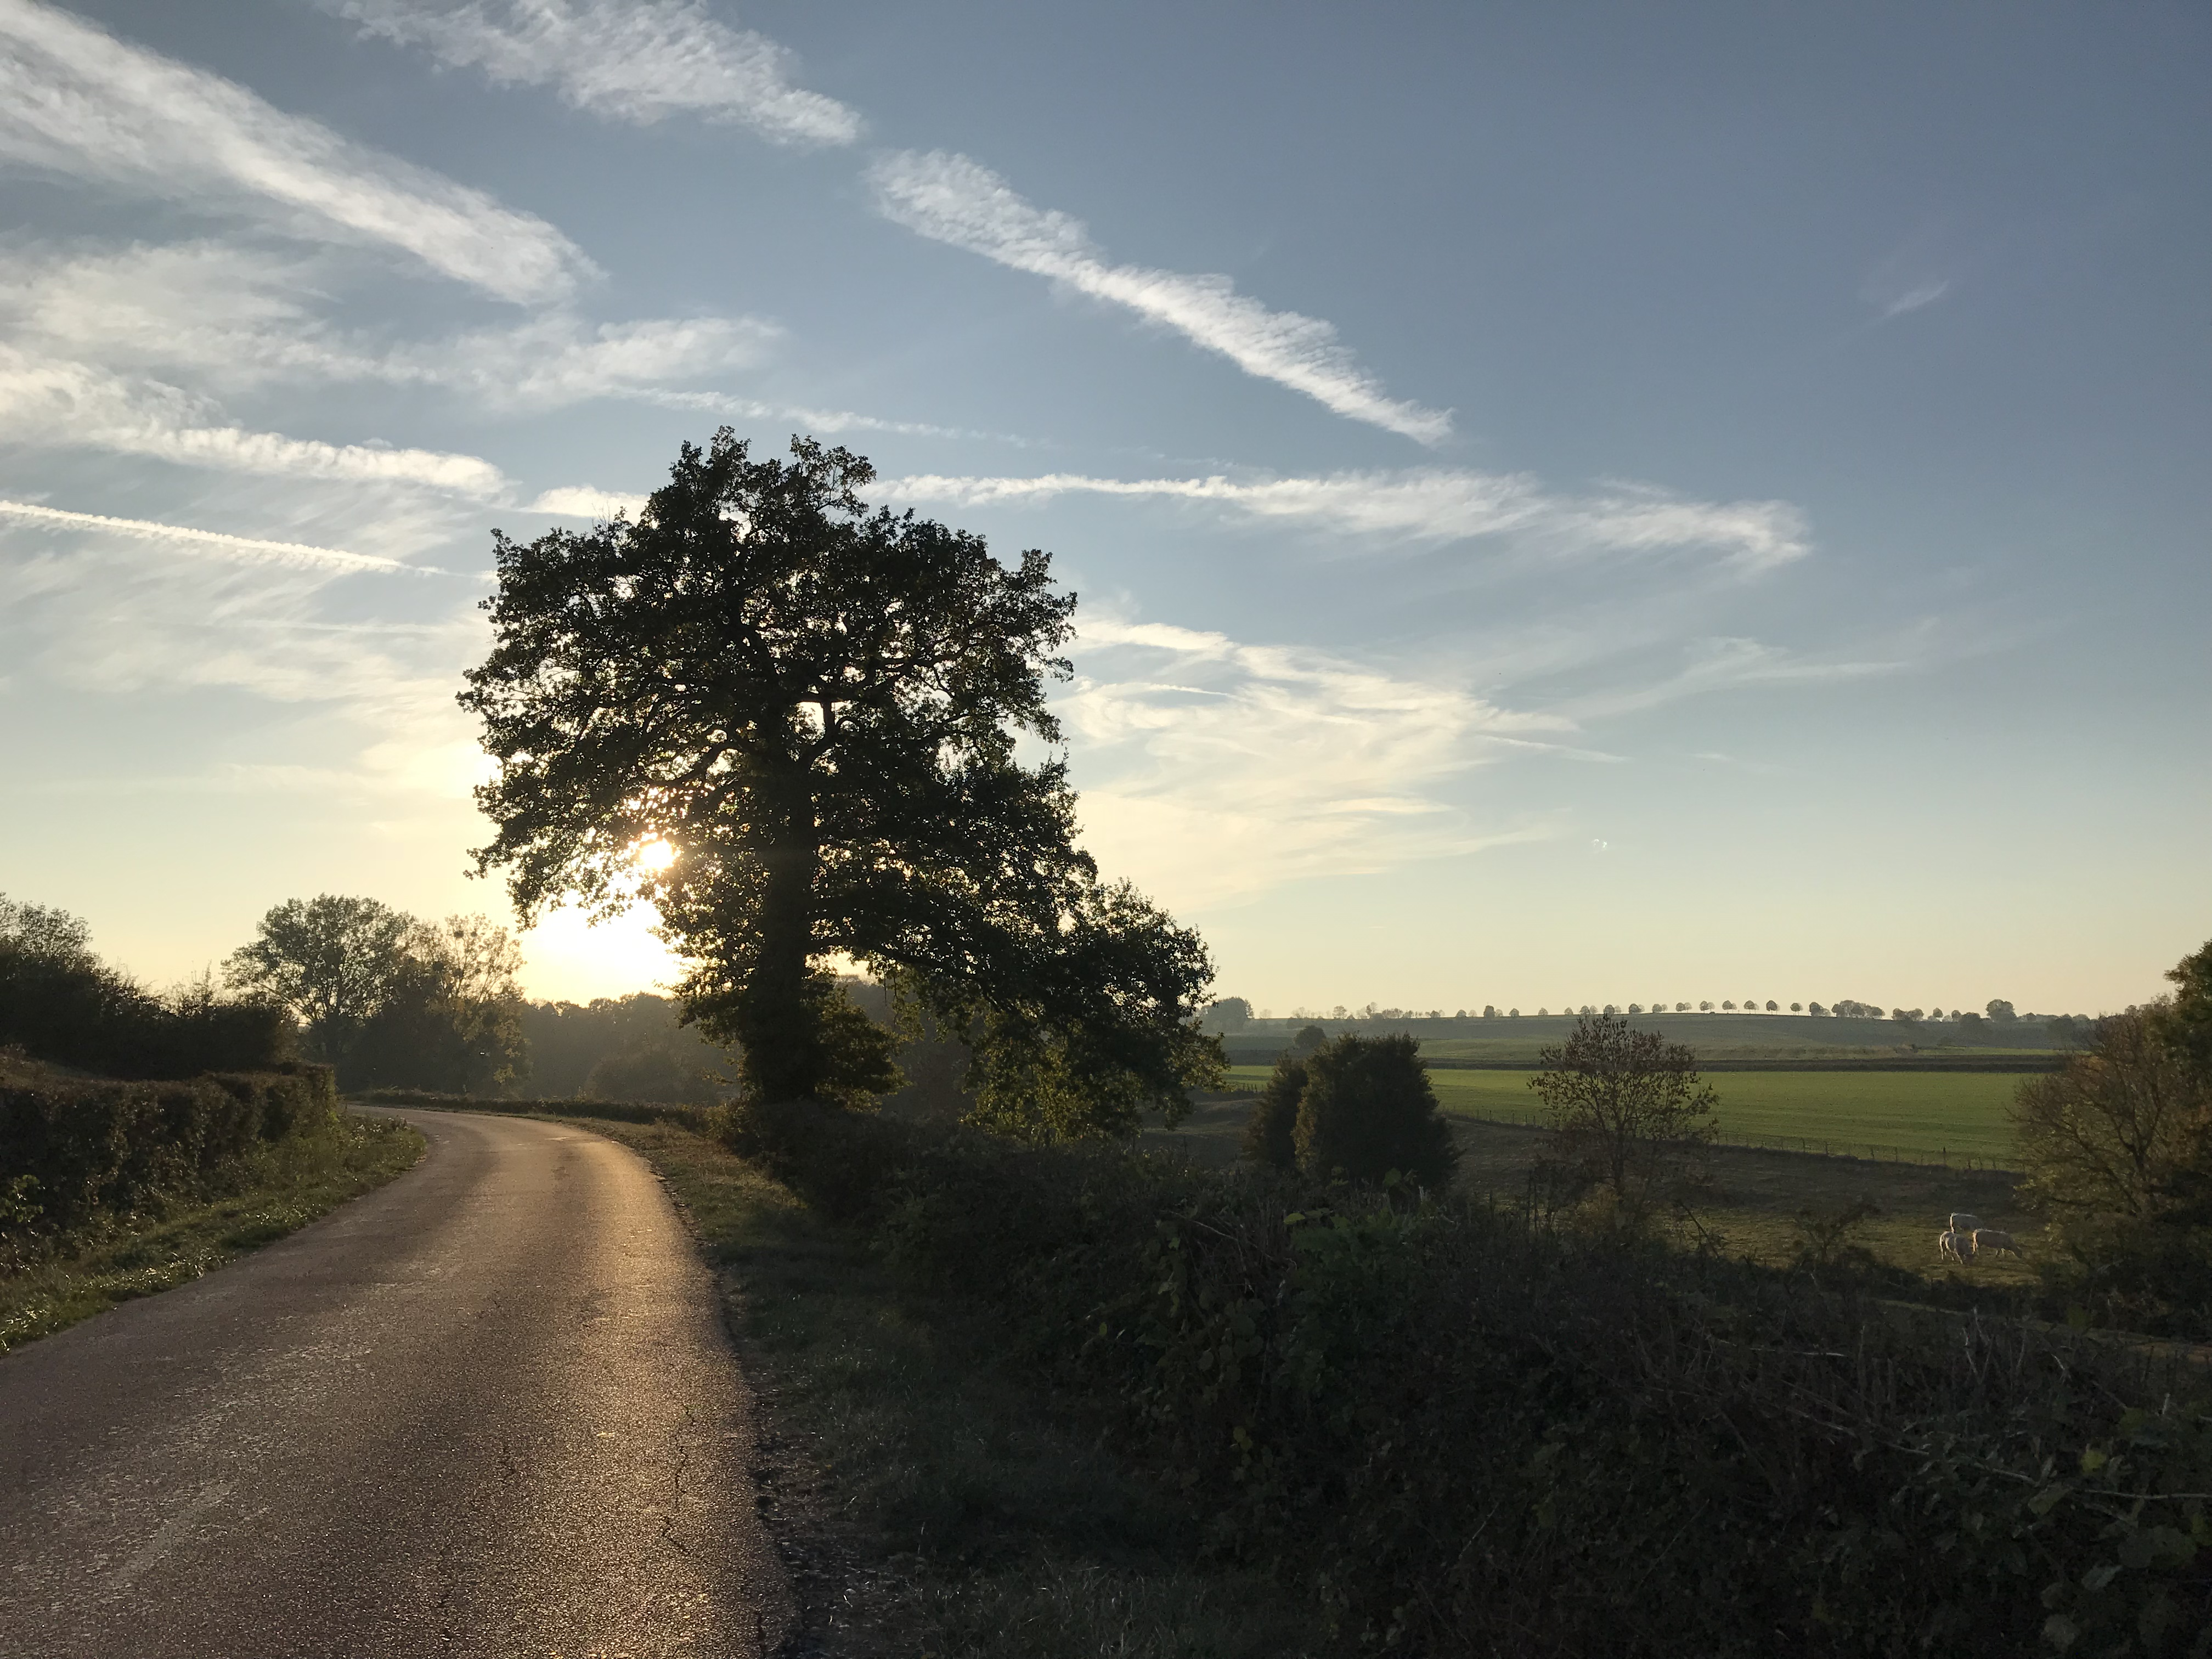 Dusk on a country road in the heart of Burgundy region of France